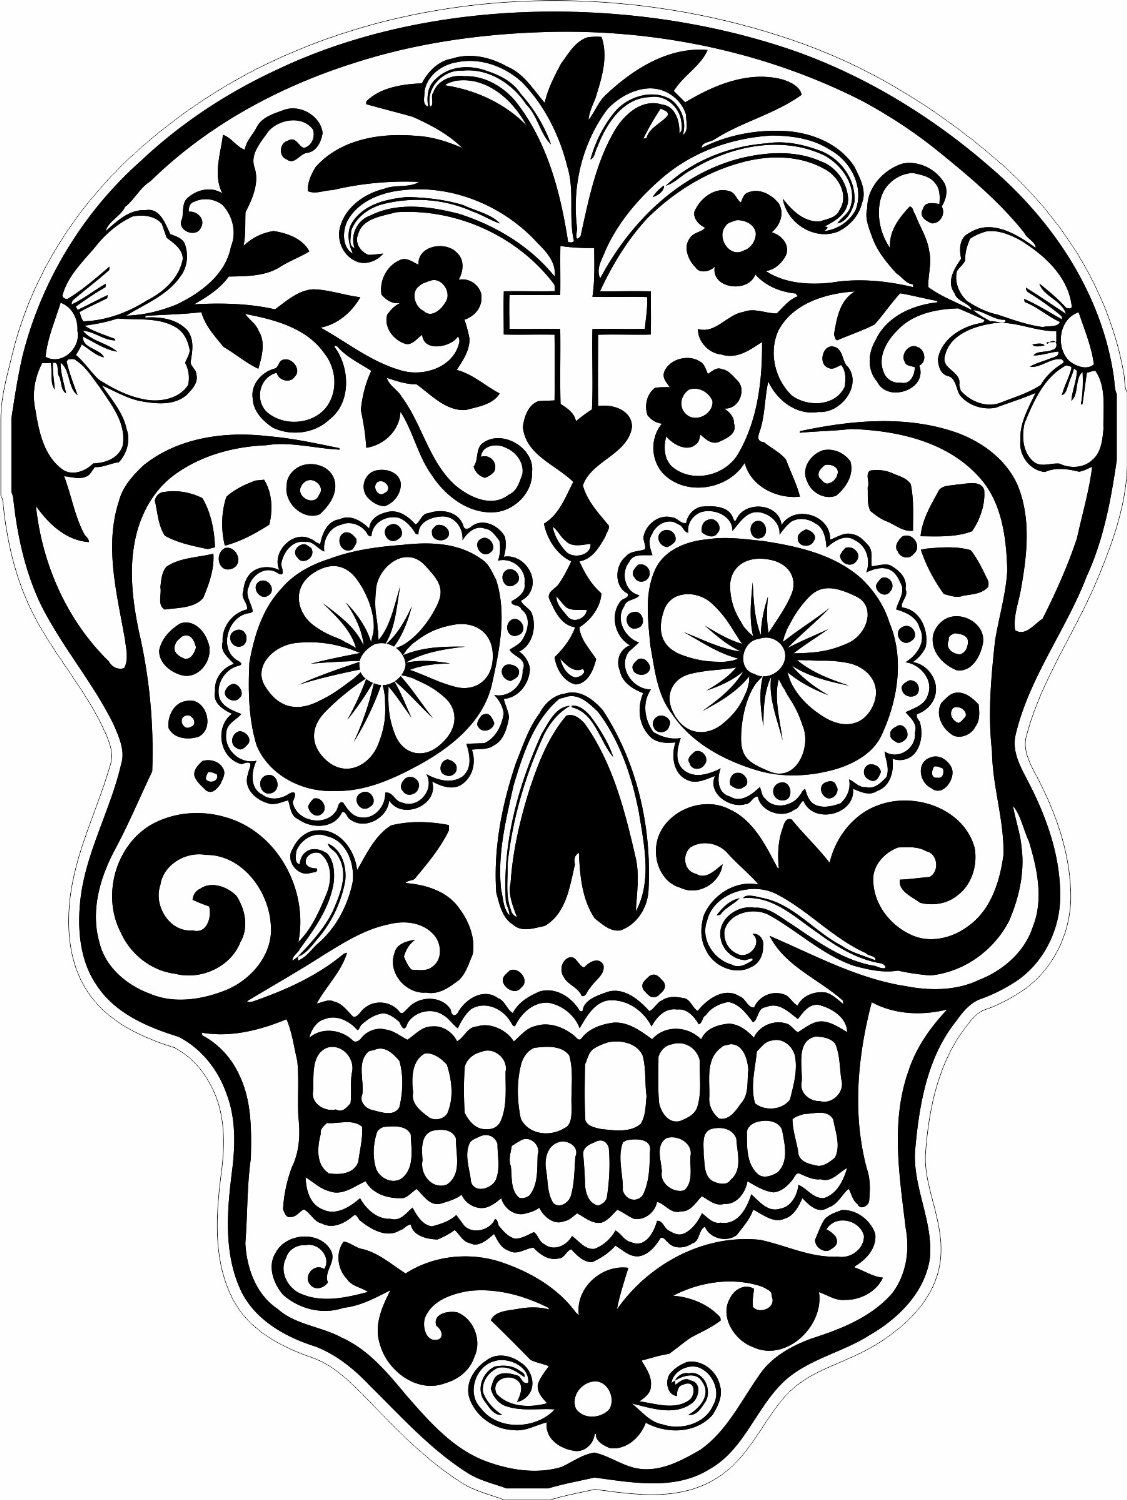 Free Printable Skull Coloring Pages  Printable 3p - Free For Children